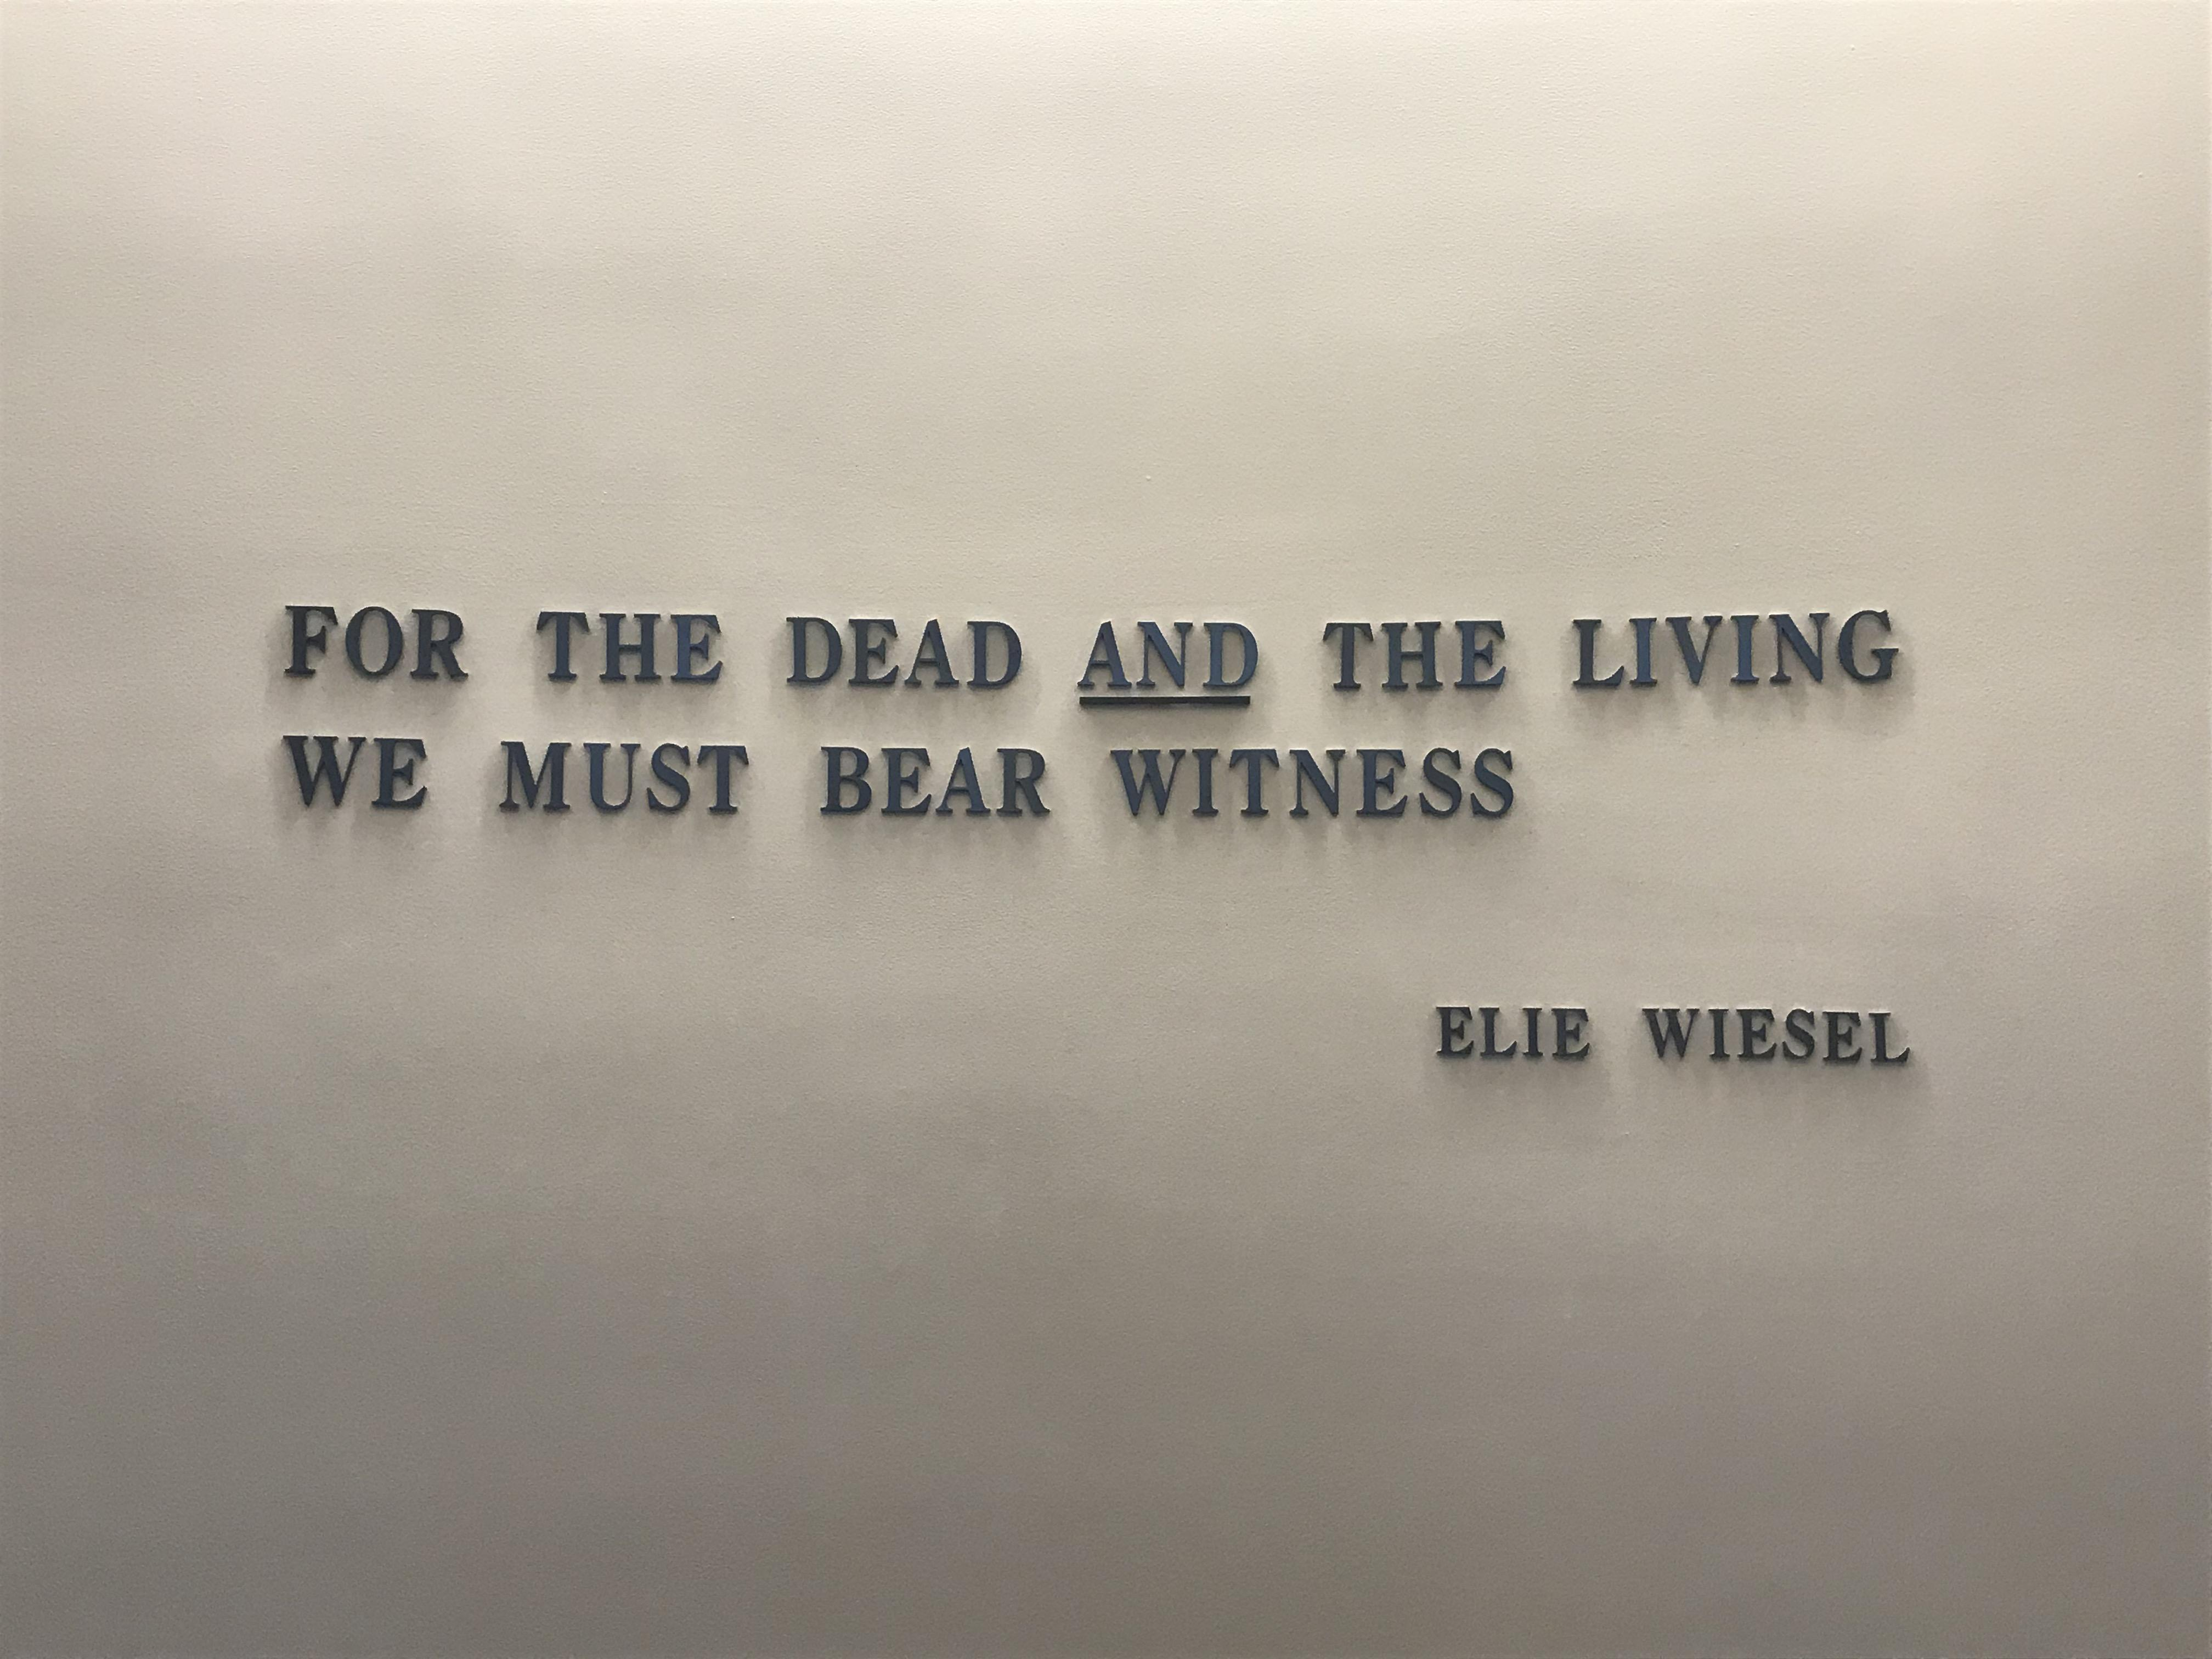 For the dead AND the living, we must bear witness. -Elie Wiesel [600×900]